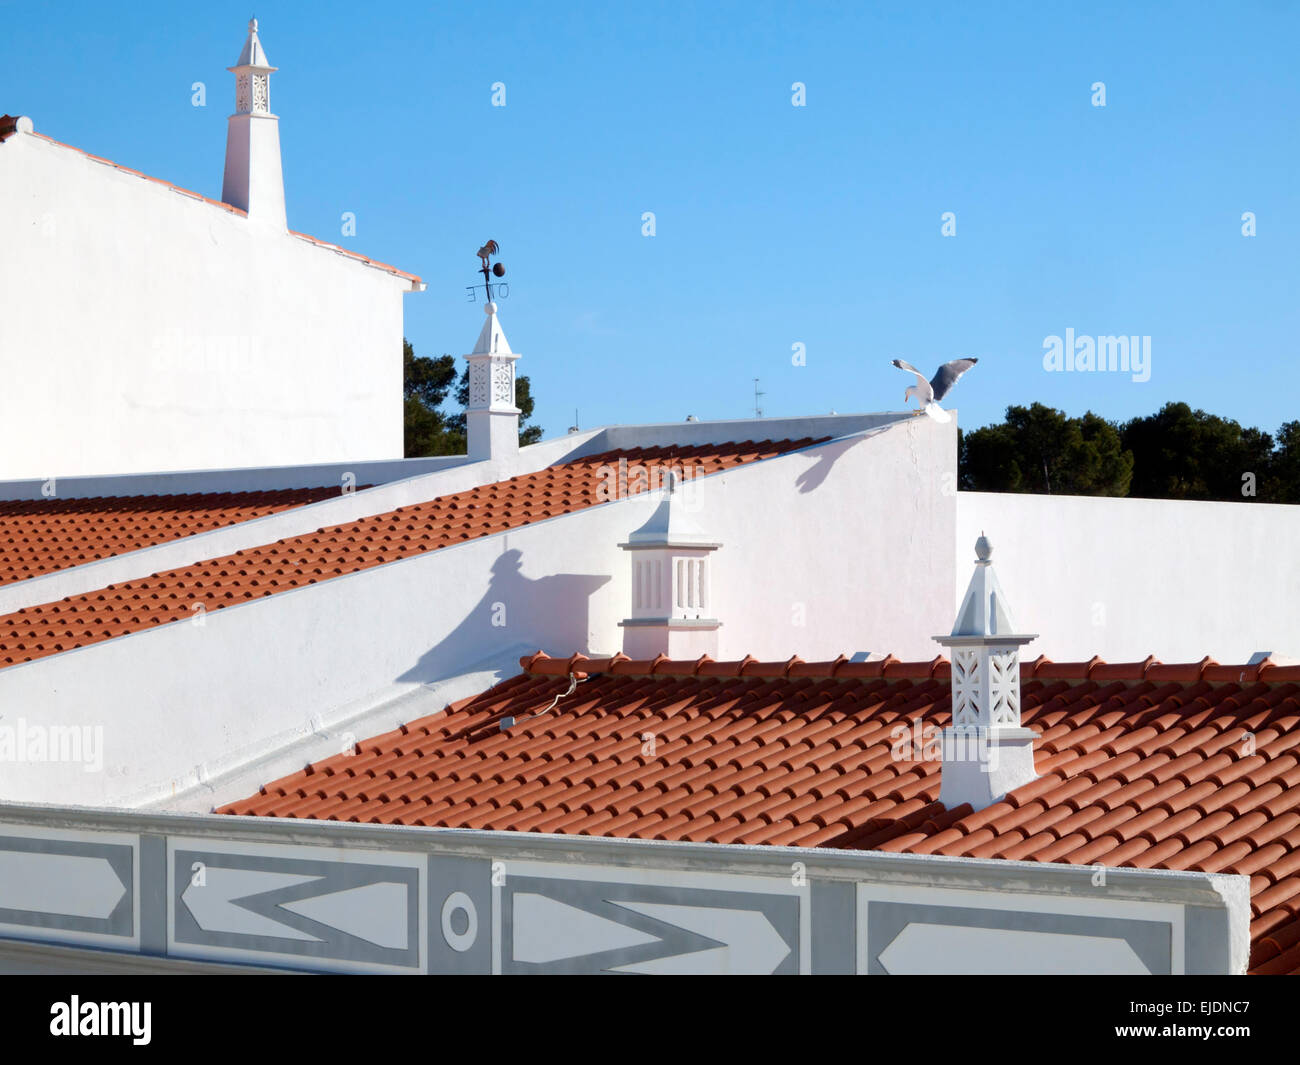 Toits Cheminées Algarve Rooftop Photos And Algarve Rooftop Images Alamy